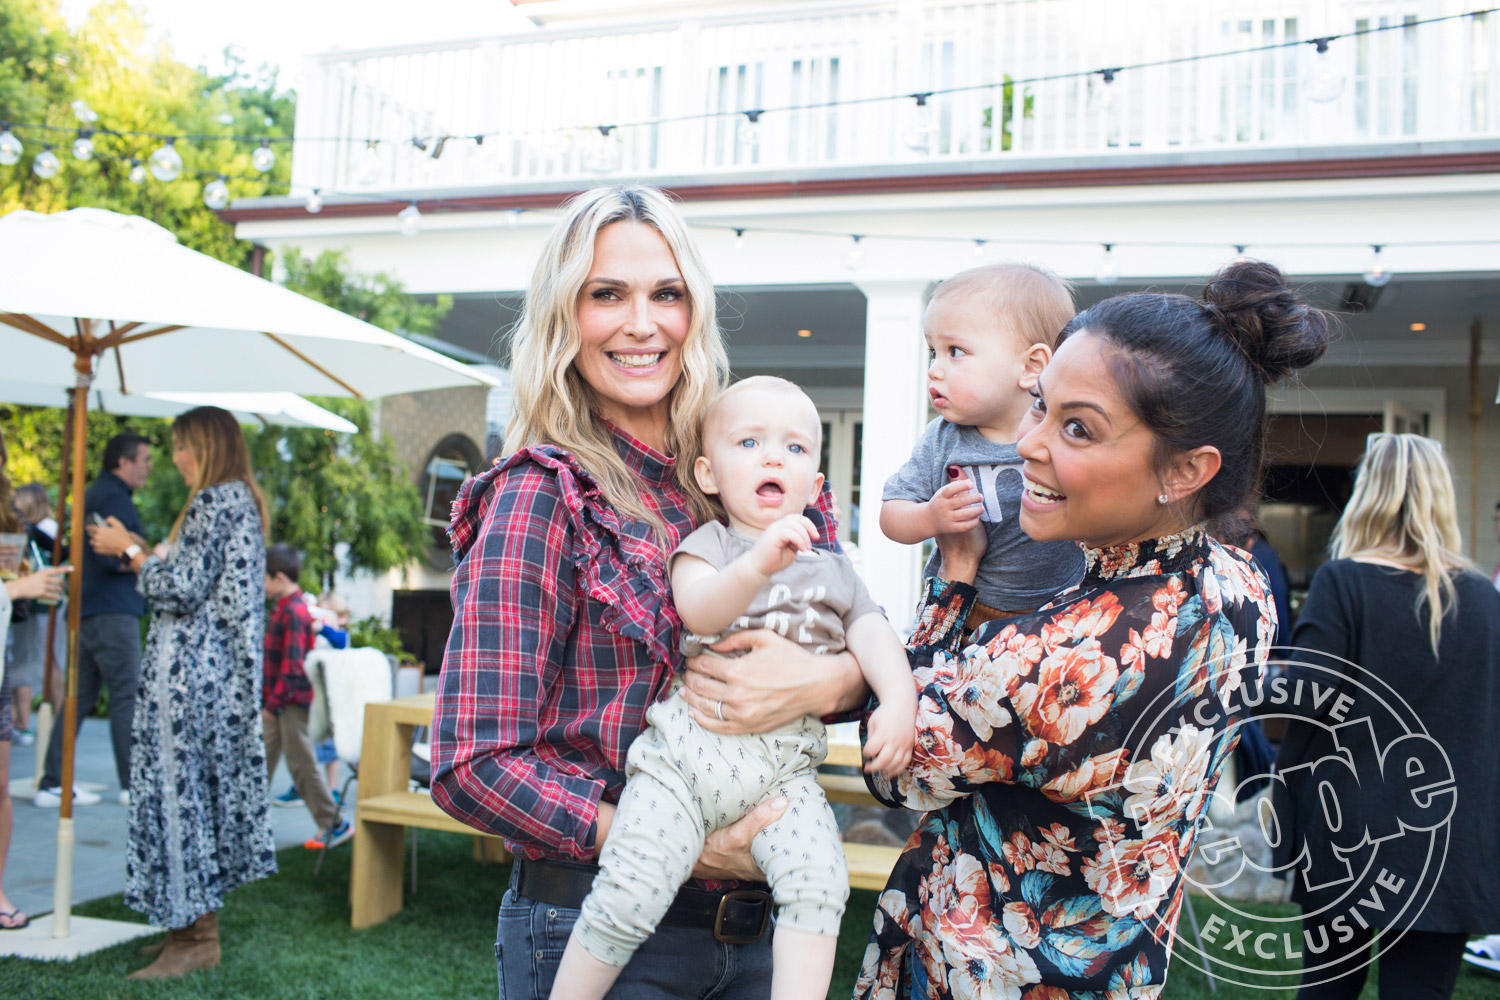 Exclusive on Molly Sims' son's birthday partyCredit: Gia Canali